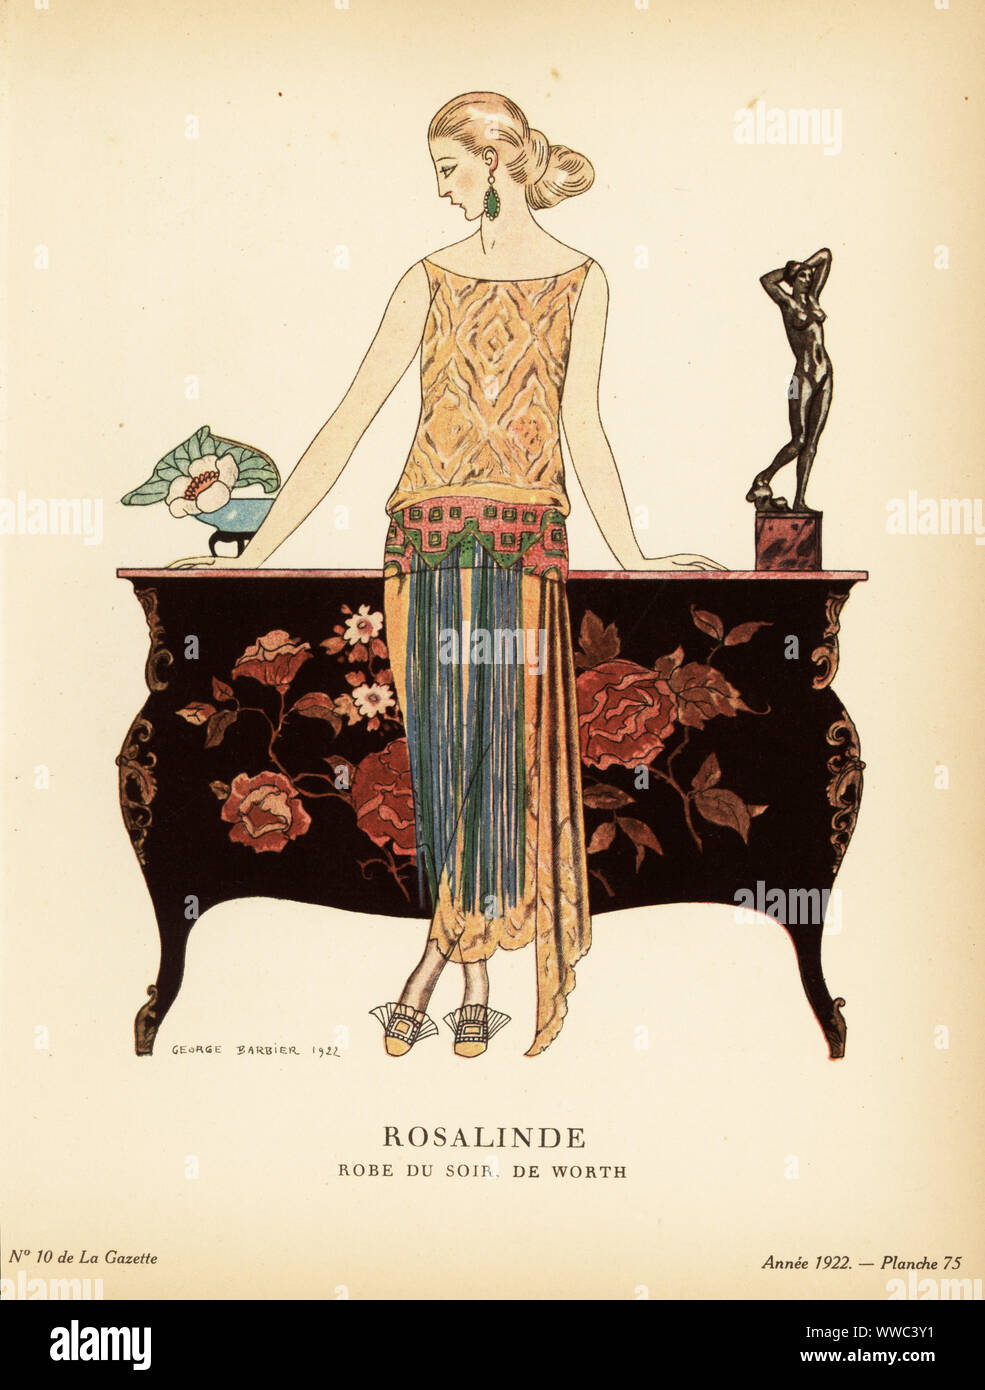 Dressing De Petite Fille george barbier pochoir stock photos & george barbier pochoir